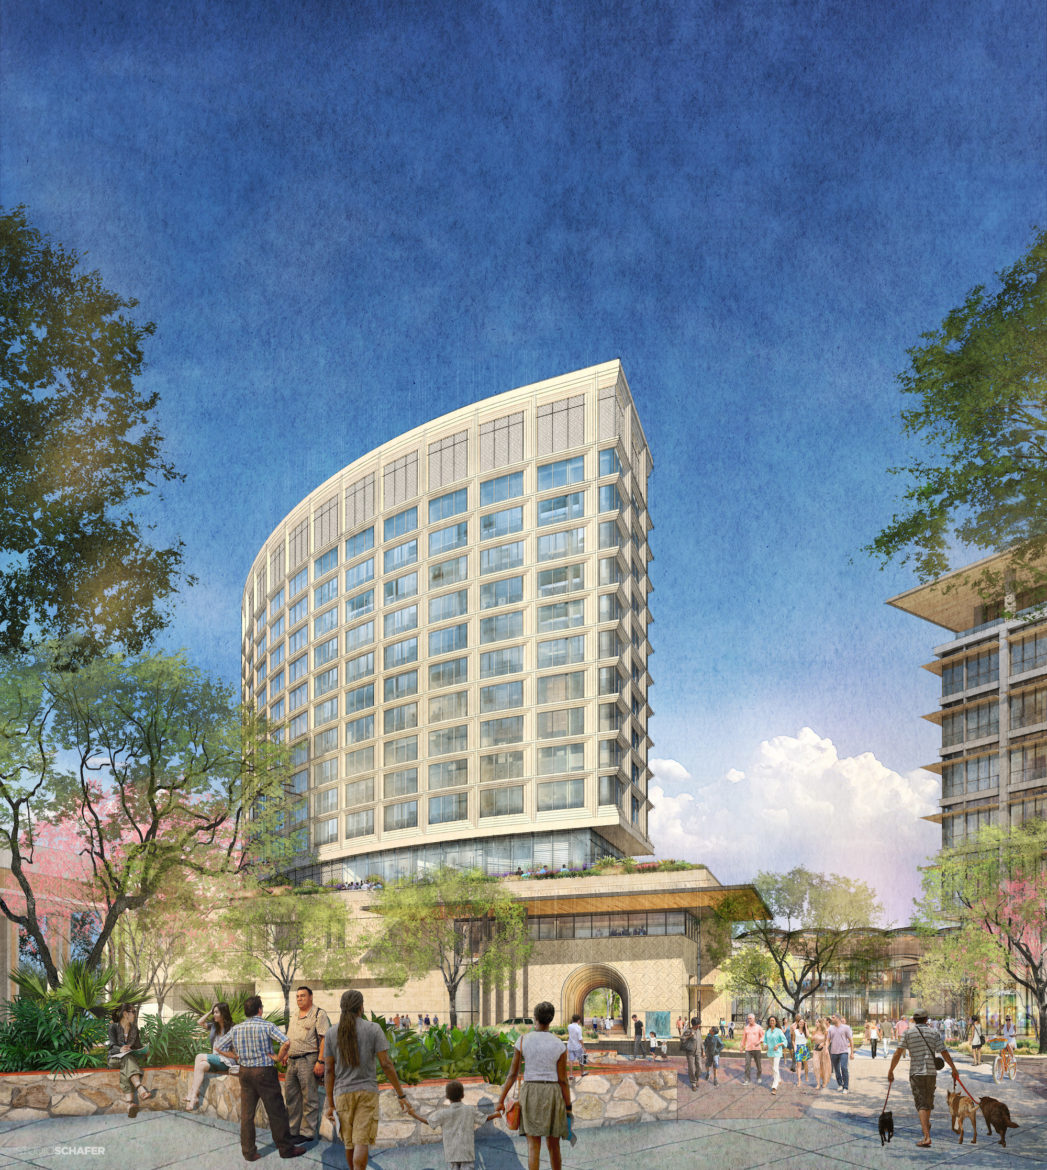 Zachry Hospitality plans to build a hotel, office tower, and urban market next to Hemisfair's Civic Park.